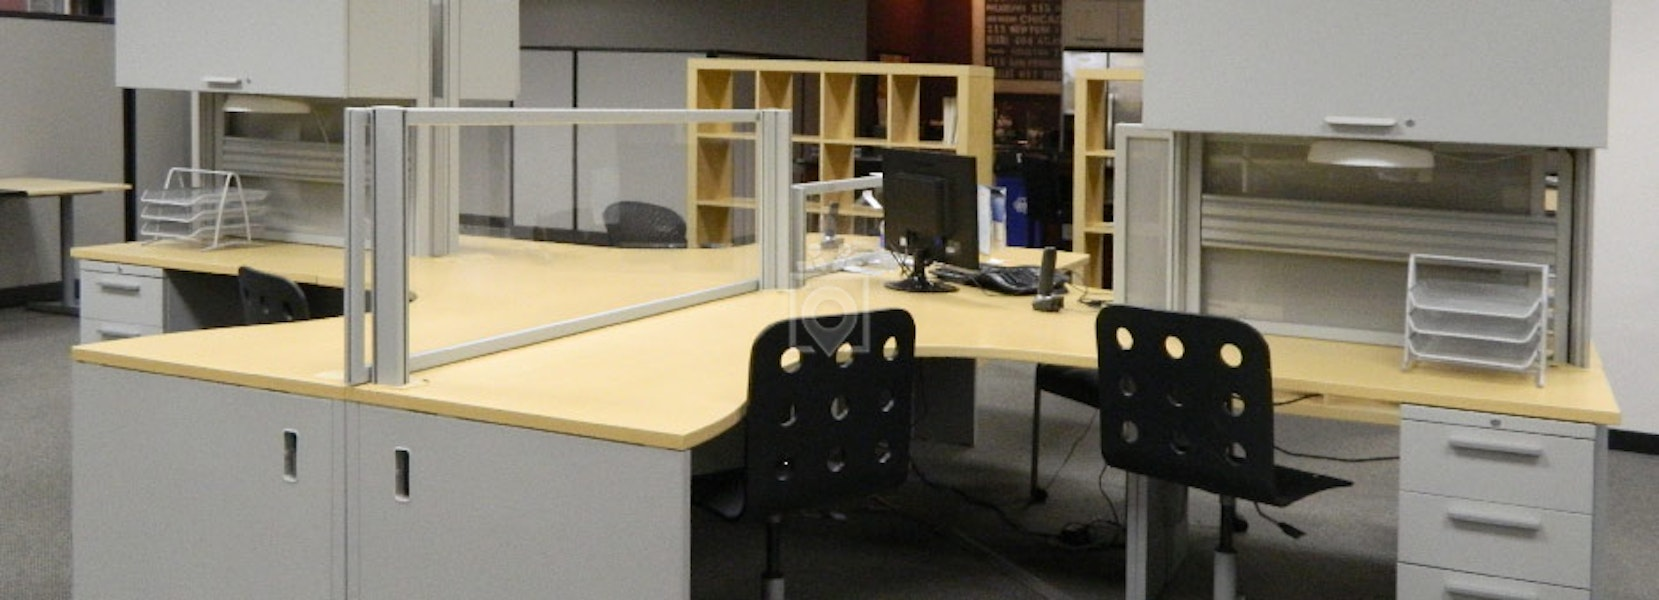 44 Office Furniture Stores In Cleveland Best Prices On Used Cubicles In Cleveland Ohio